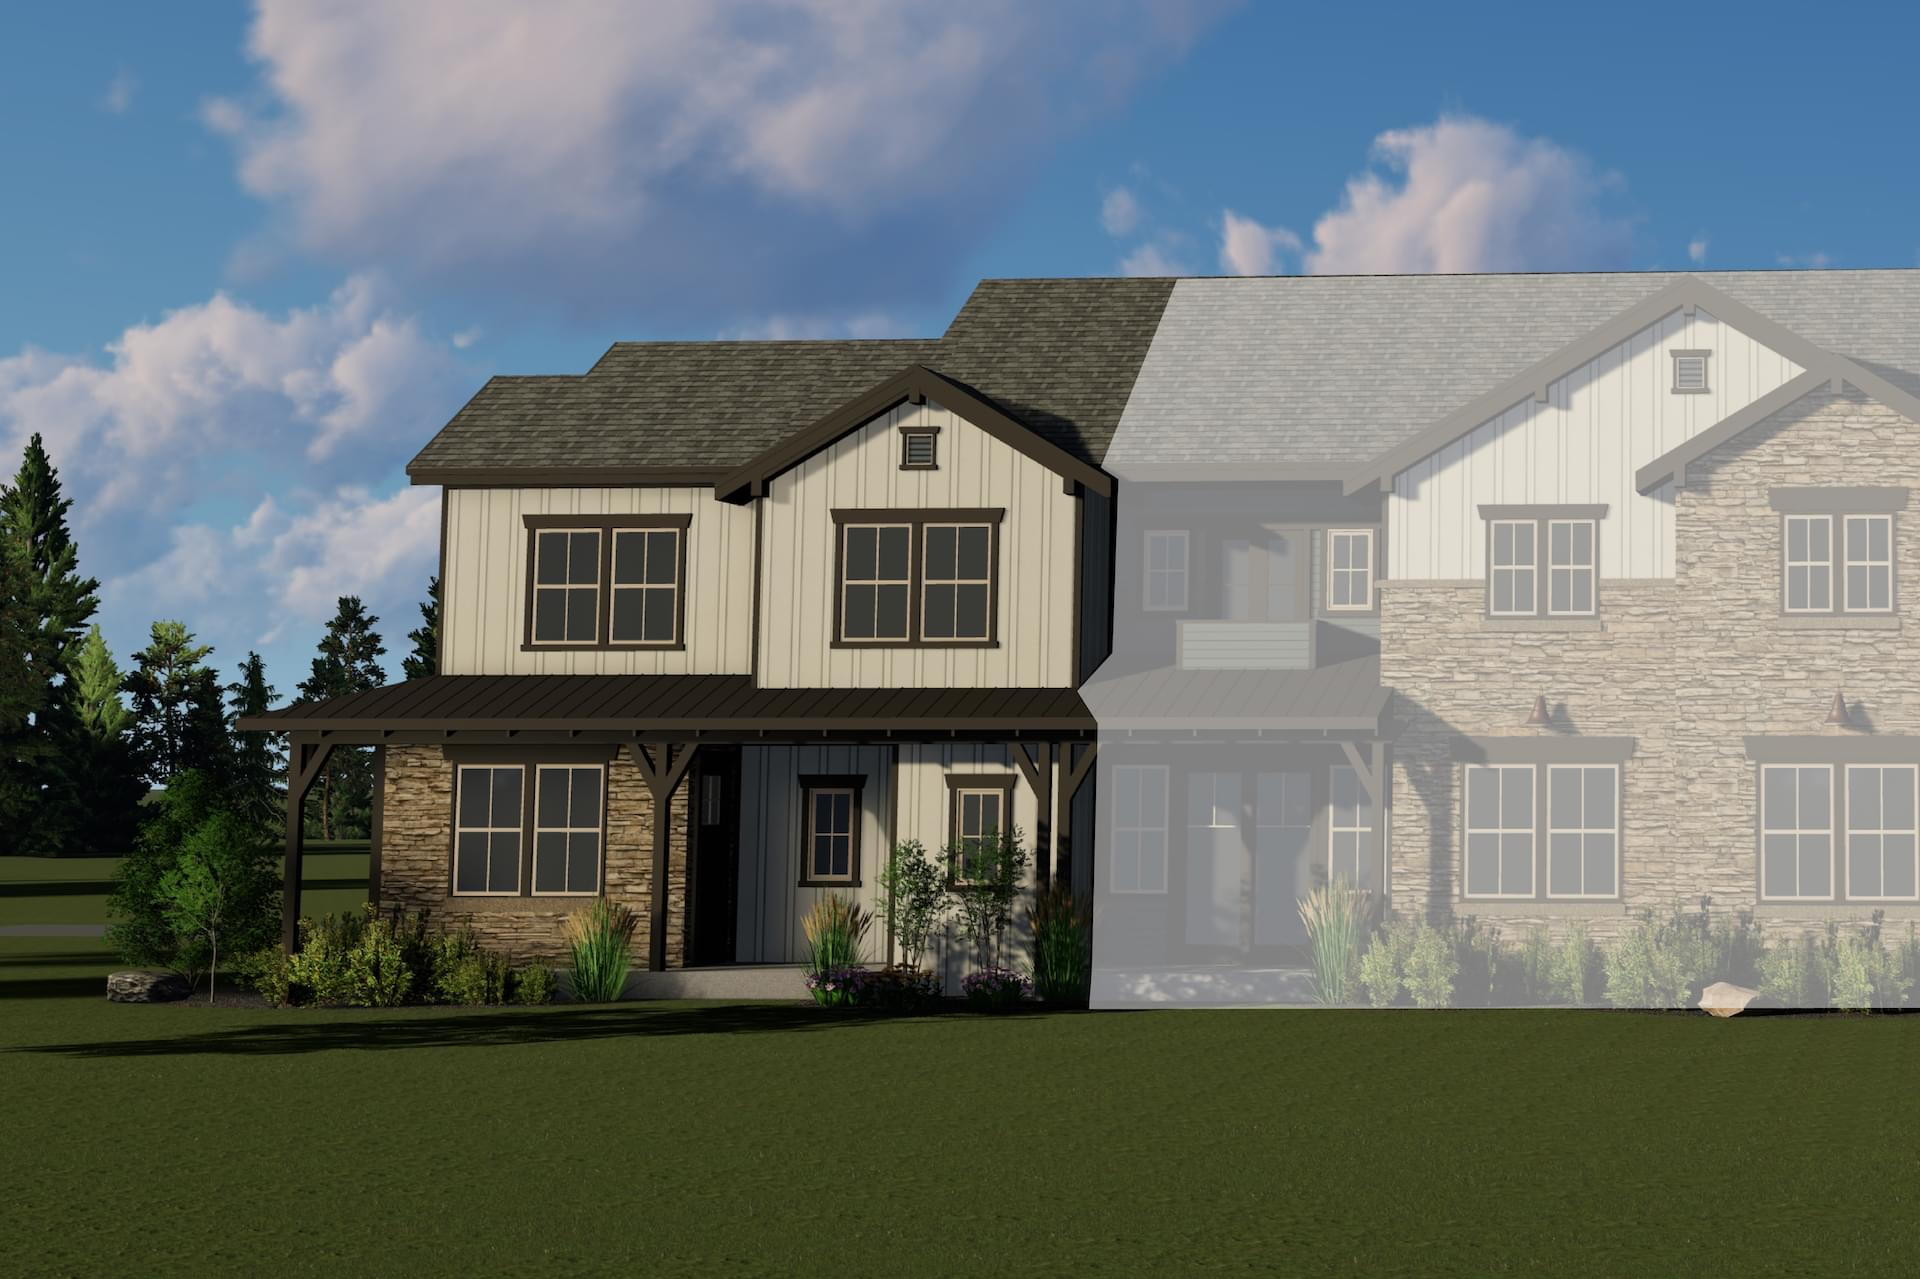 3br New Home in Berthoud, CO